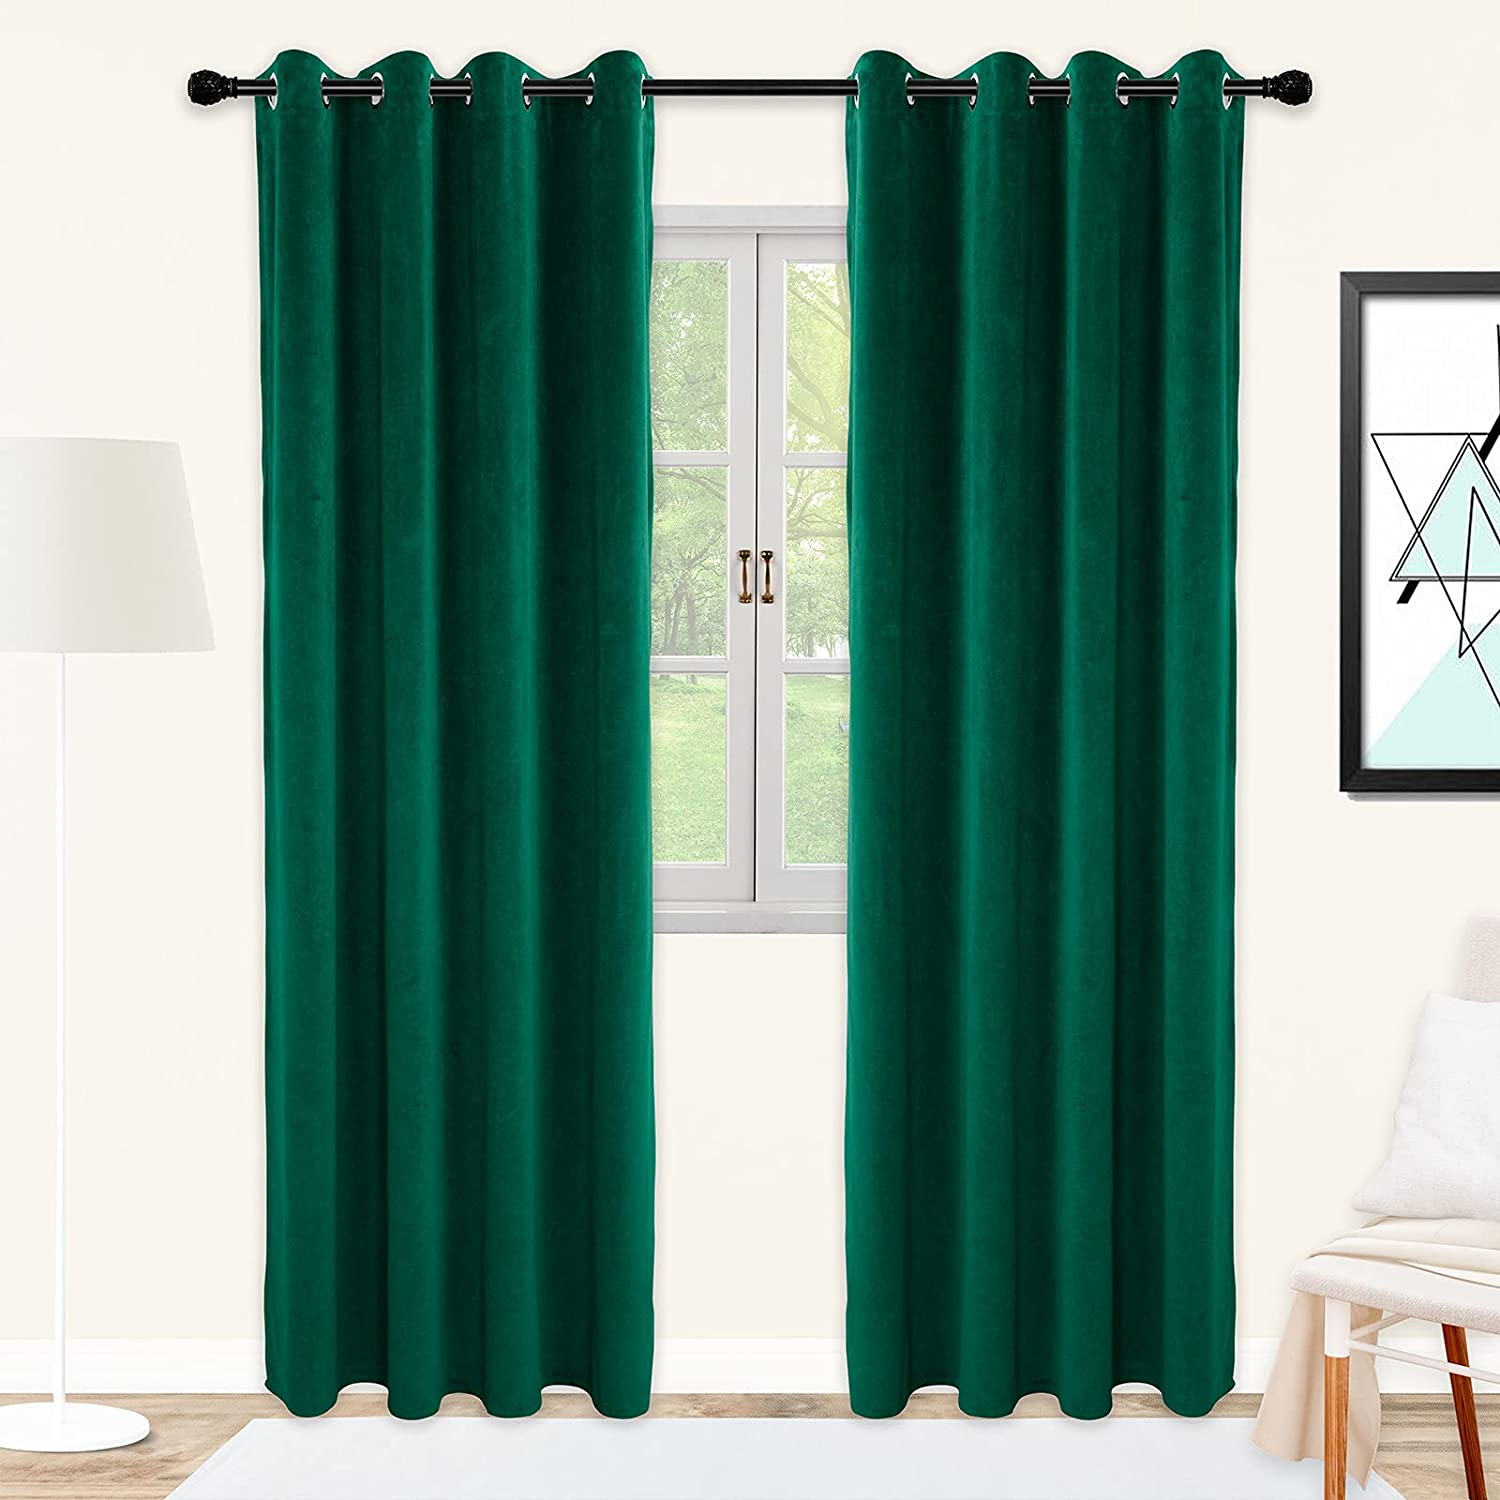 Finally resale start SNITIE Emerald Green Velvet Albuquerque Mall Curtains Soft with Thermal Grommet